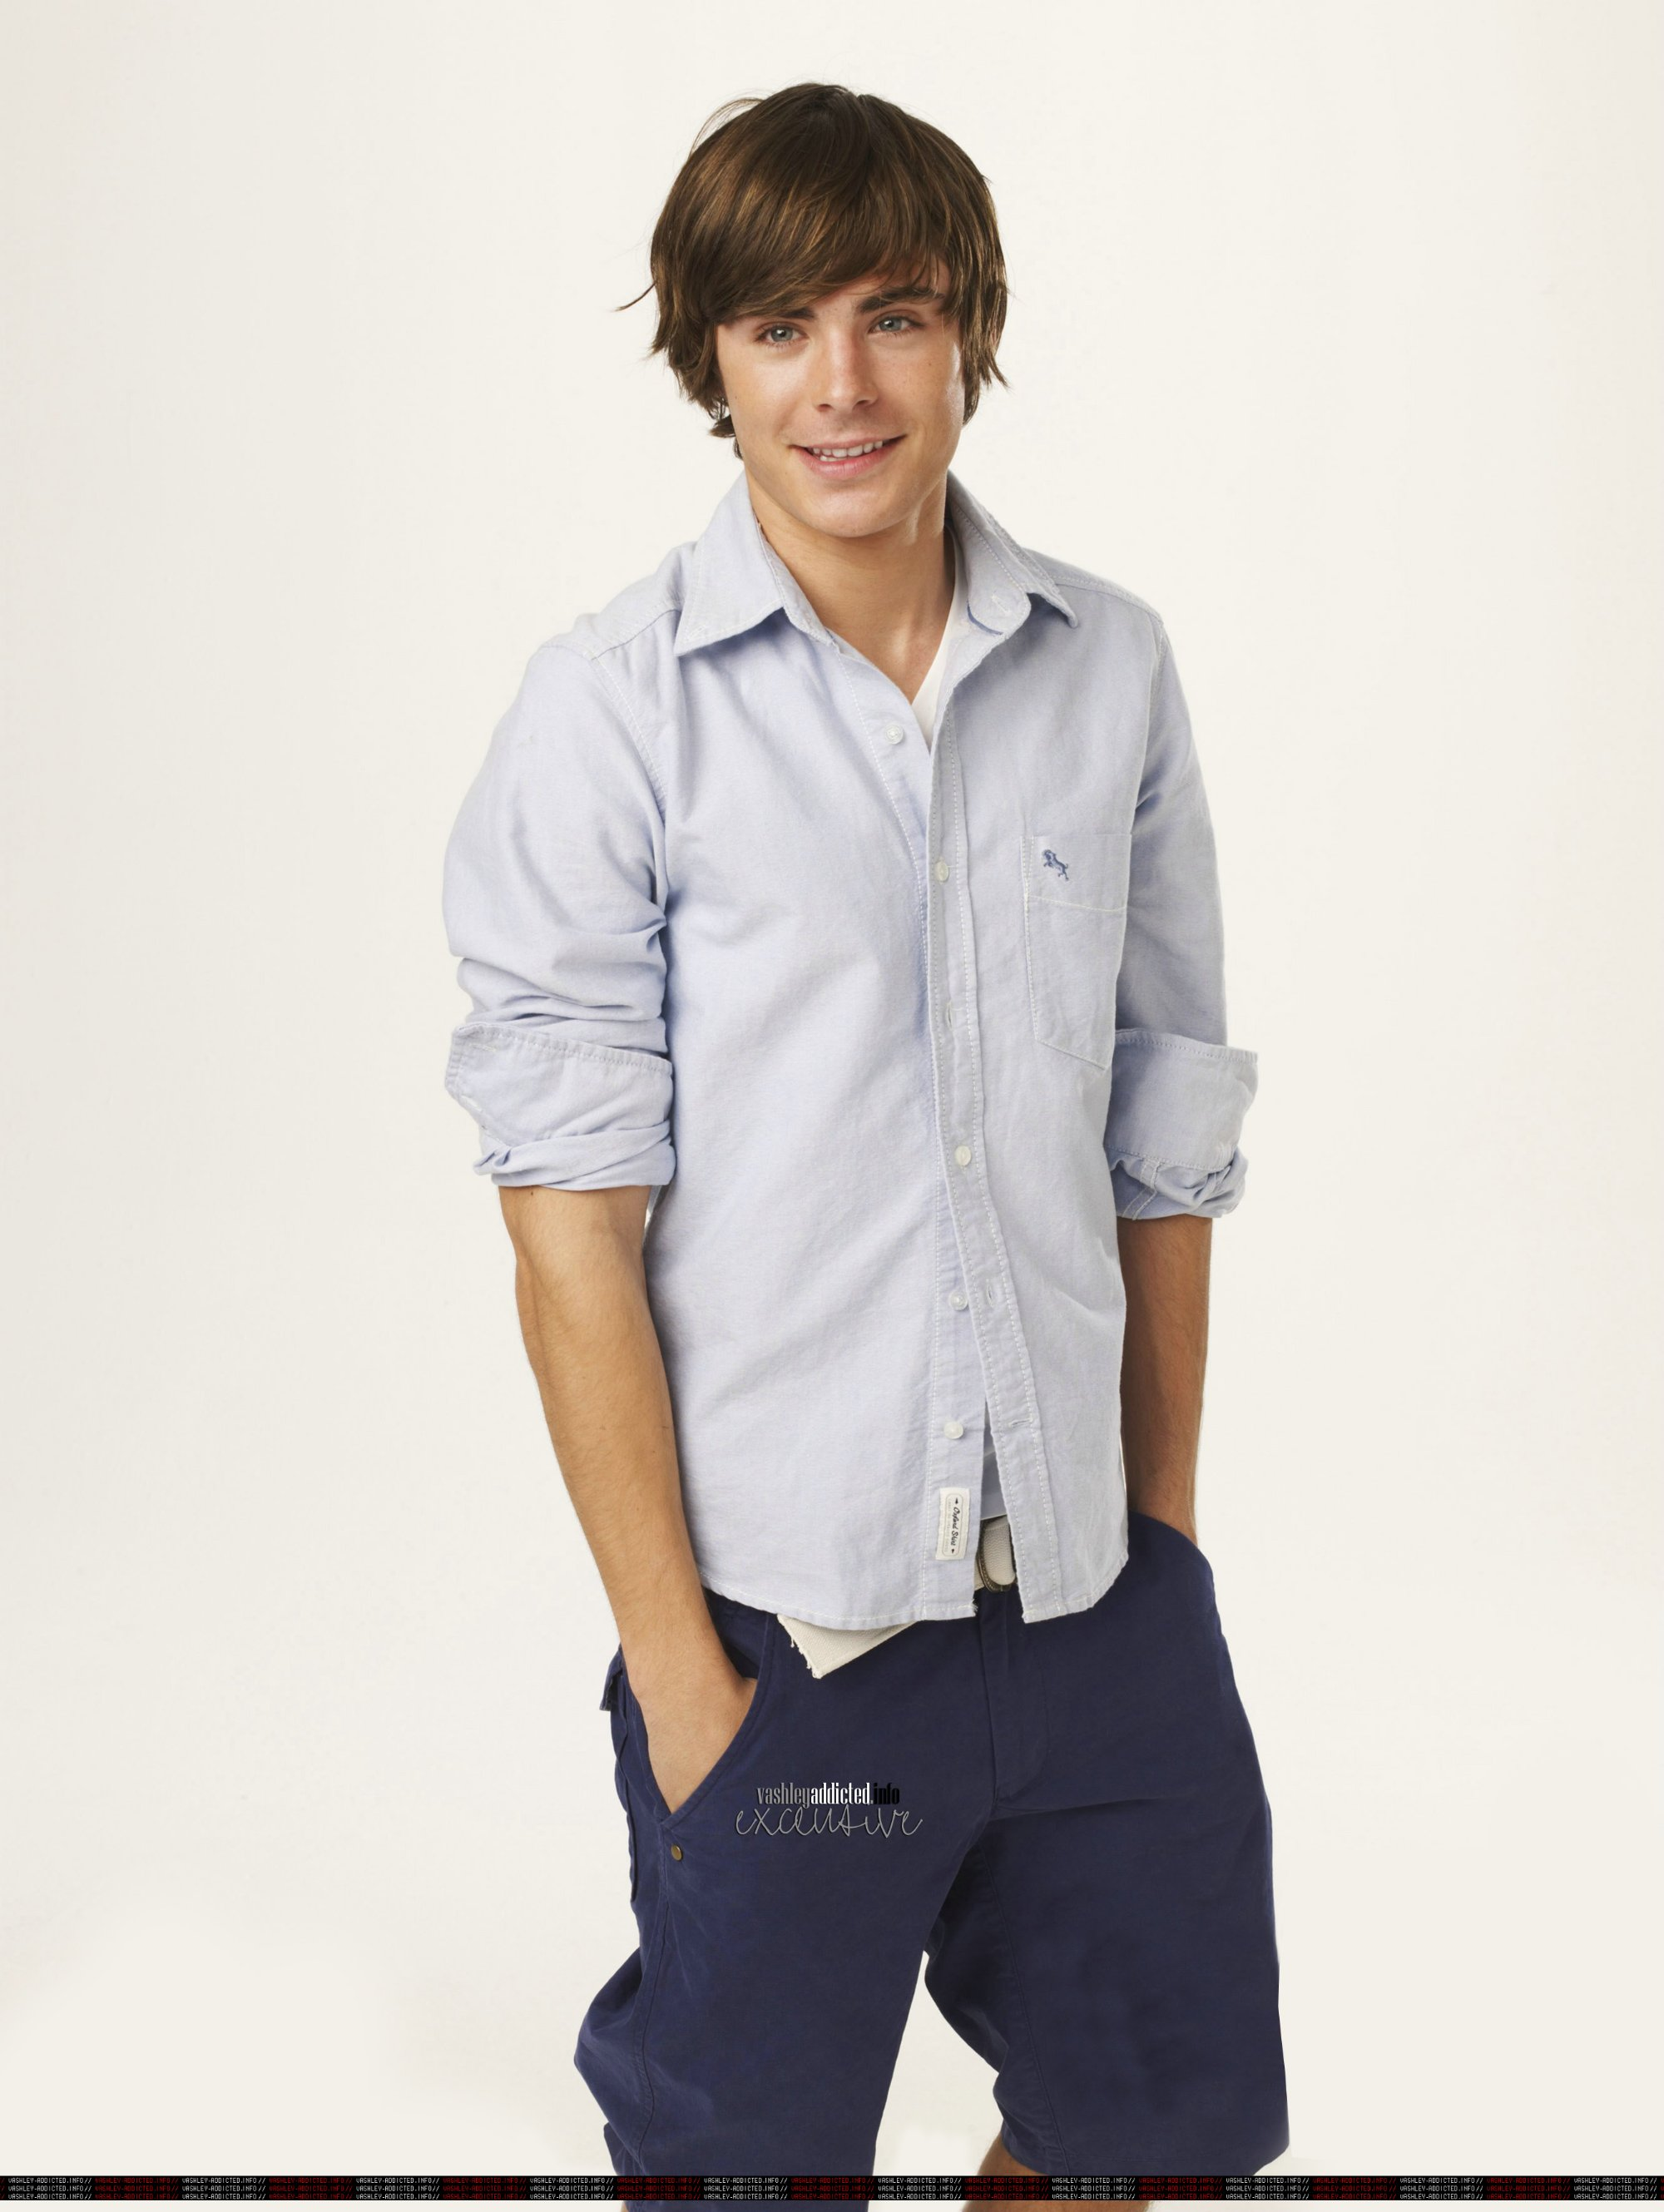 Troy From High School Musical Now